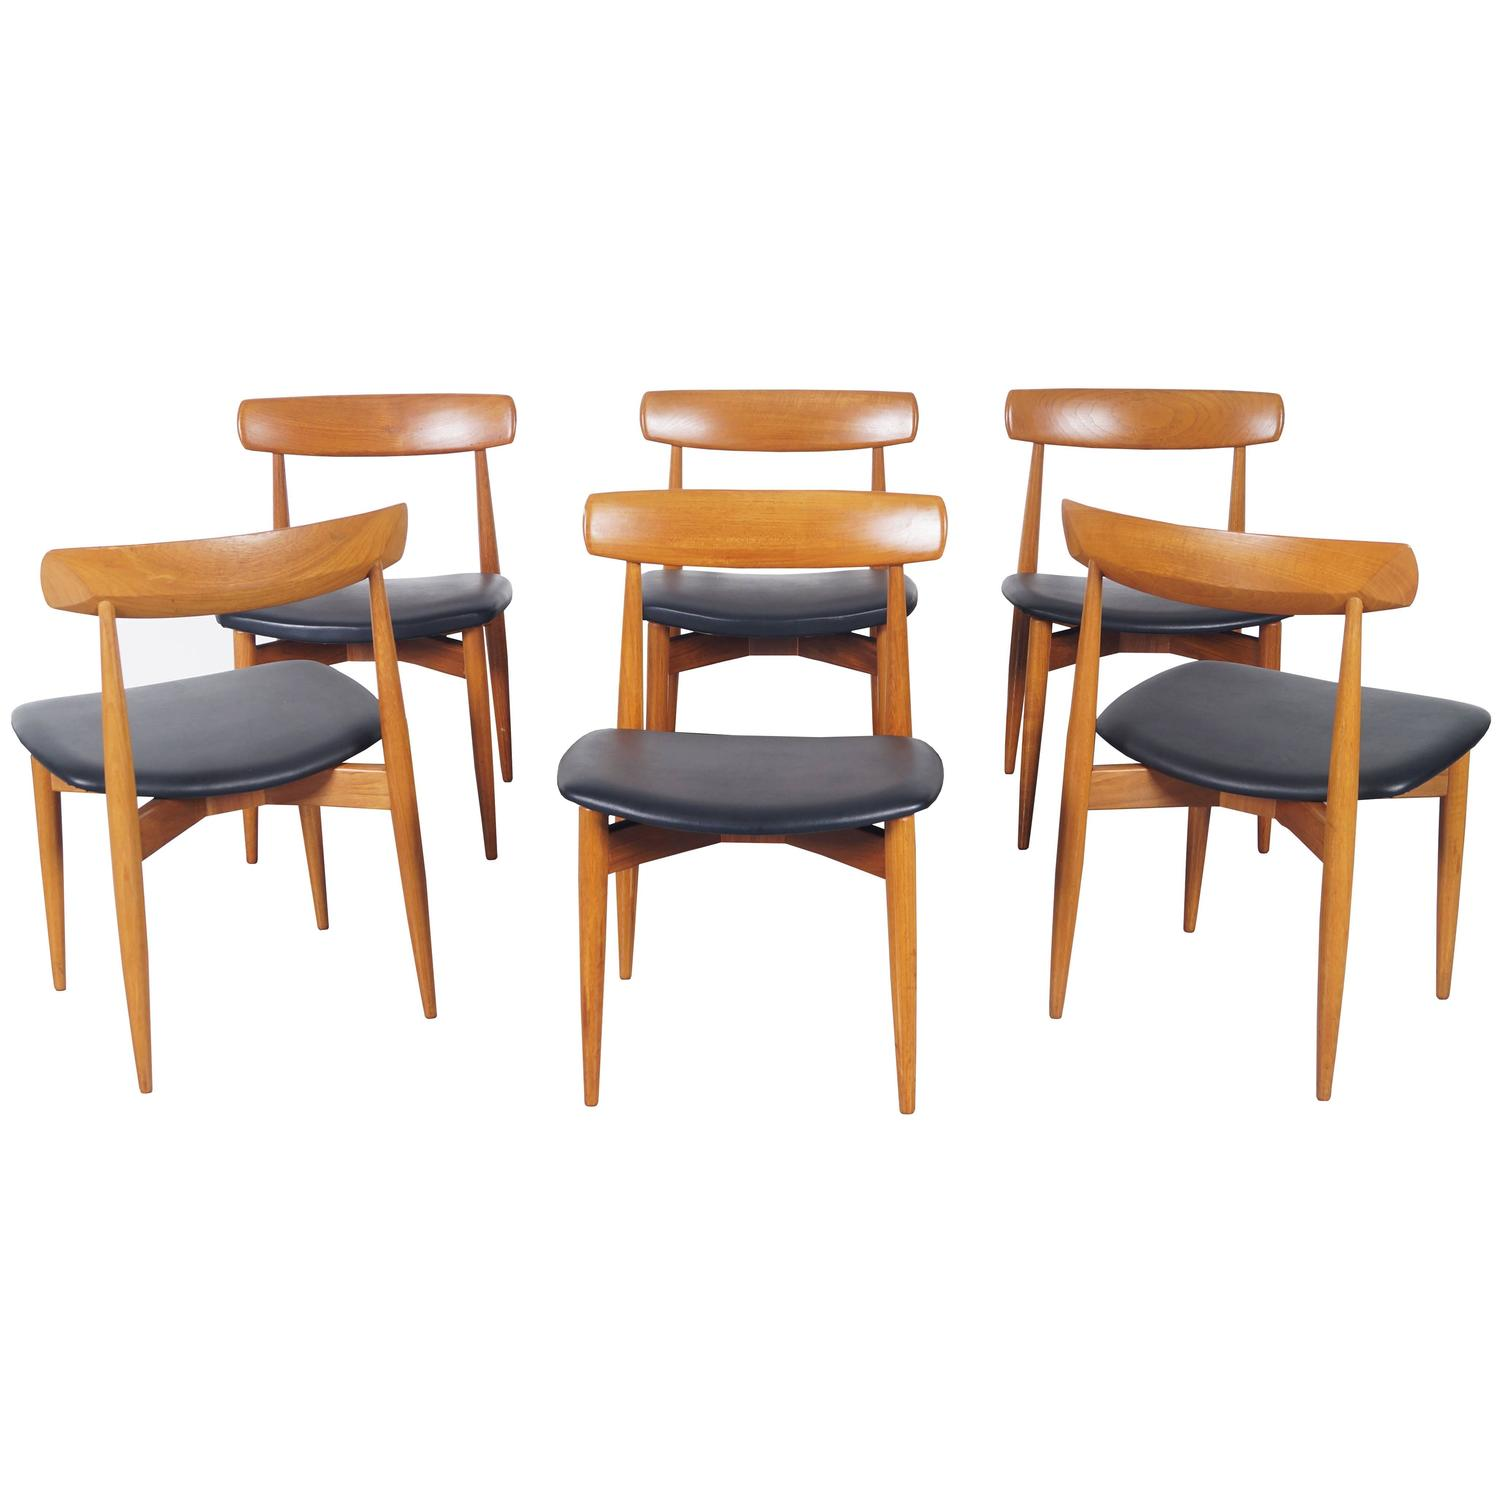 Danish Teak Dining Chairs Danish Teak Dining Chairs By H W Klein For Sale At 1stdibs